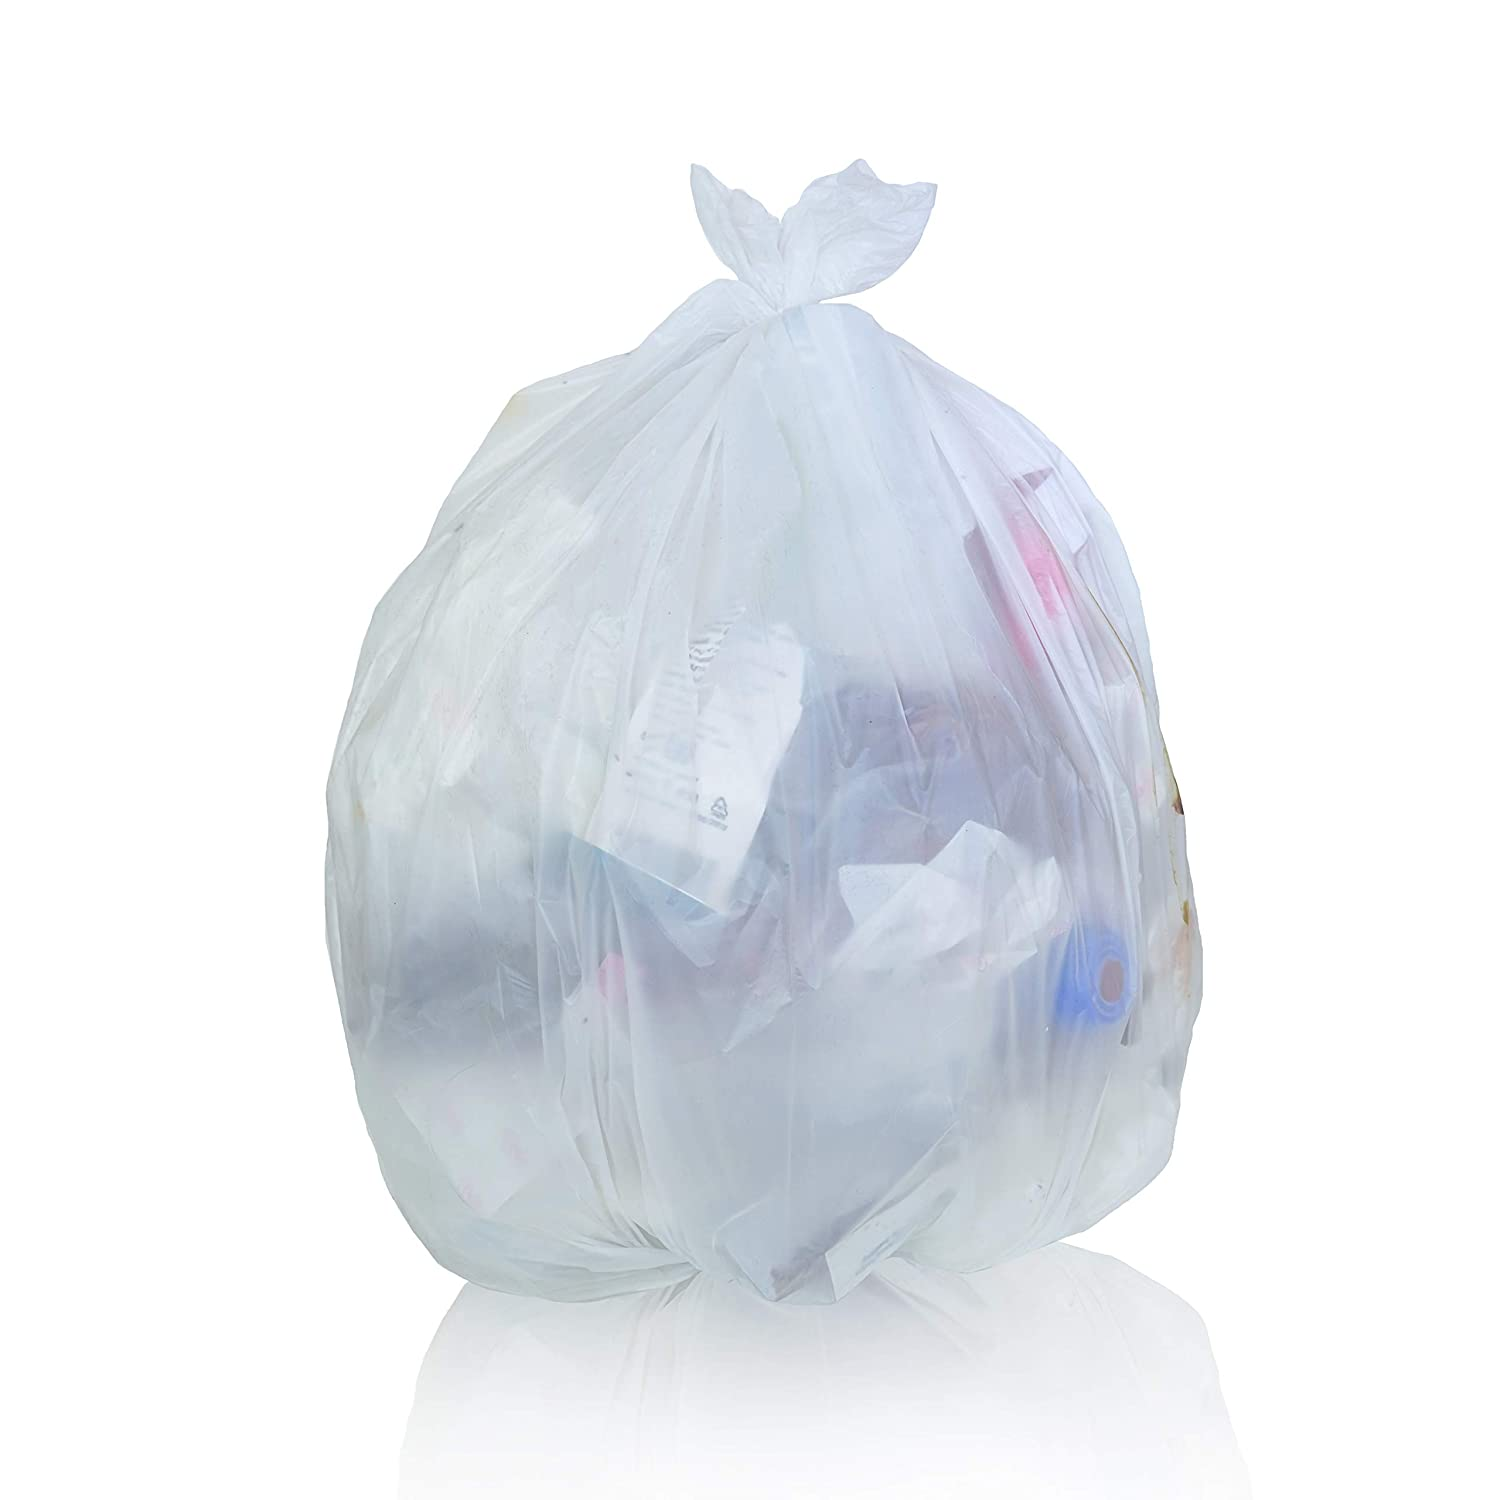 Toughbag Clear Trash Bags, 65 Gallon Garbage Bags (50) Toughbag Products